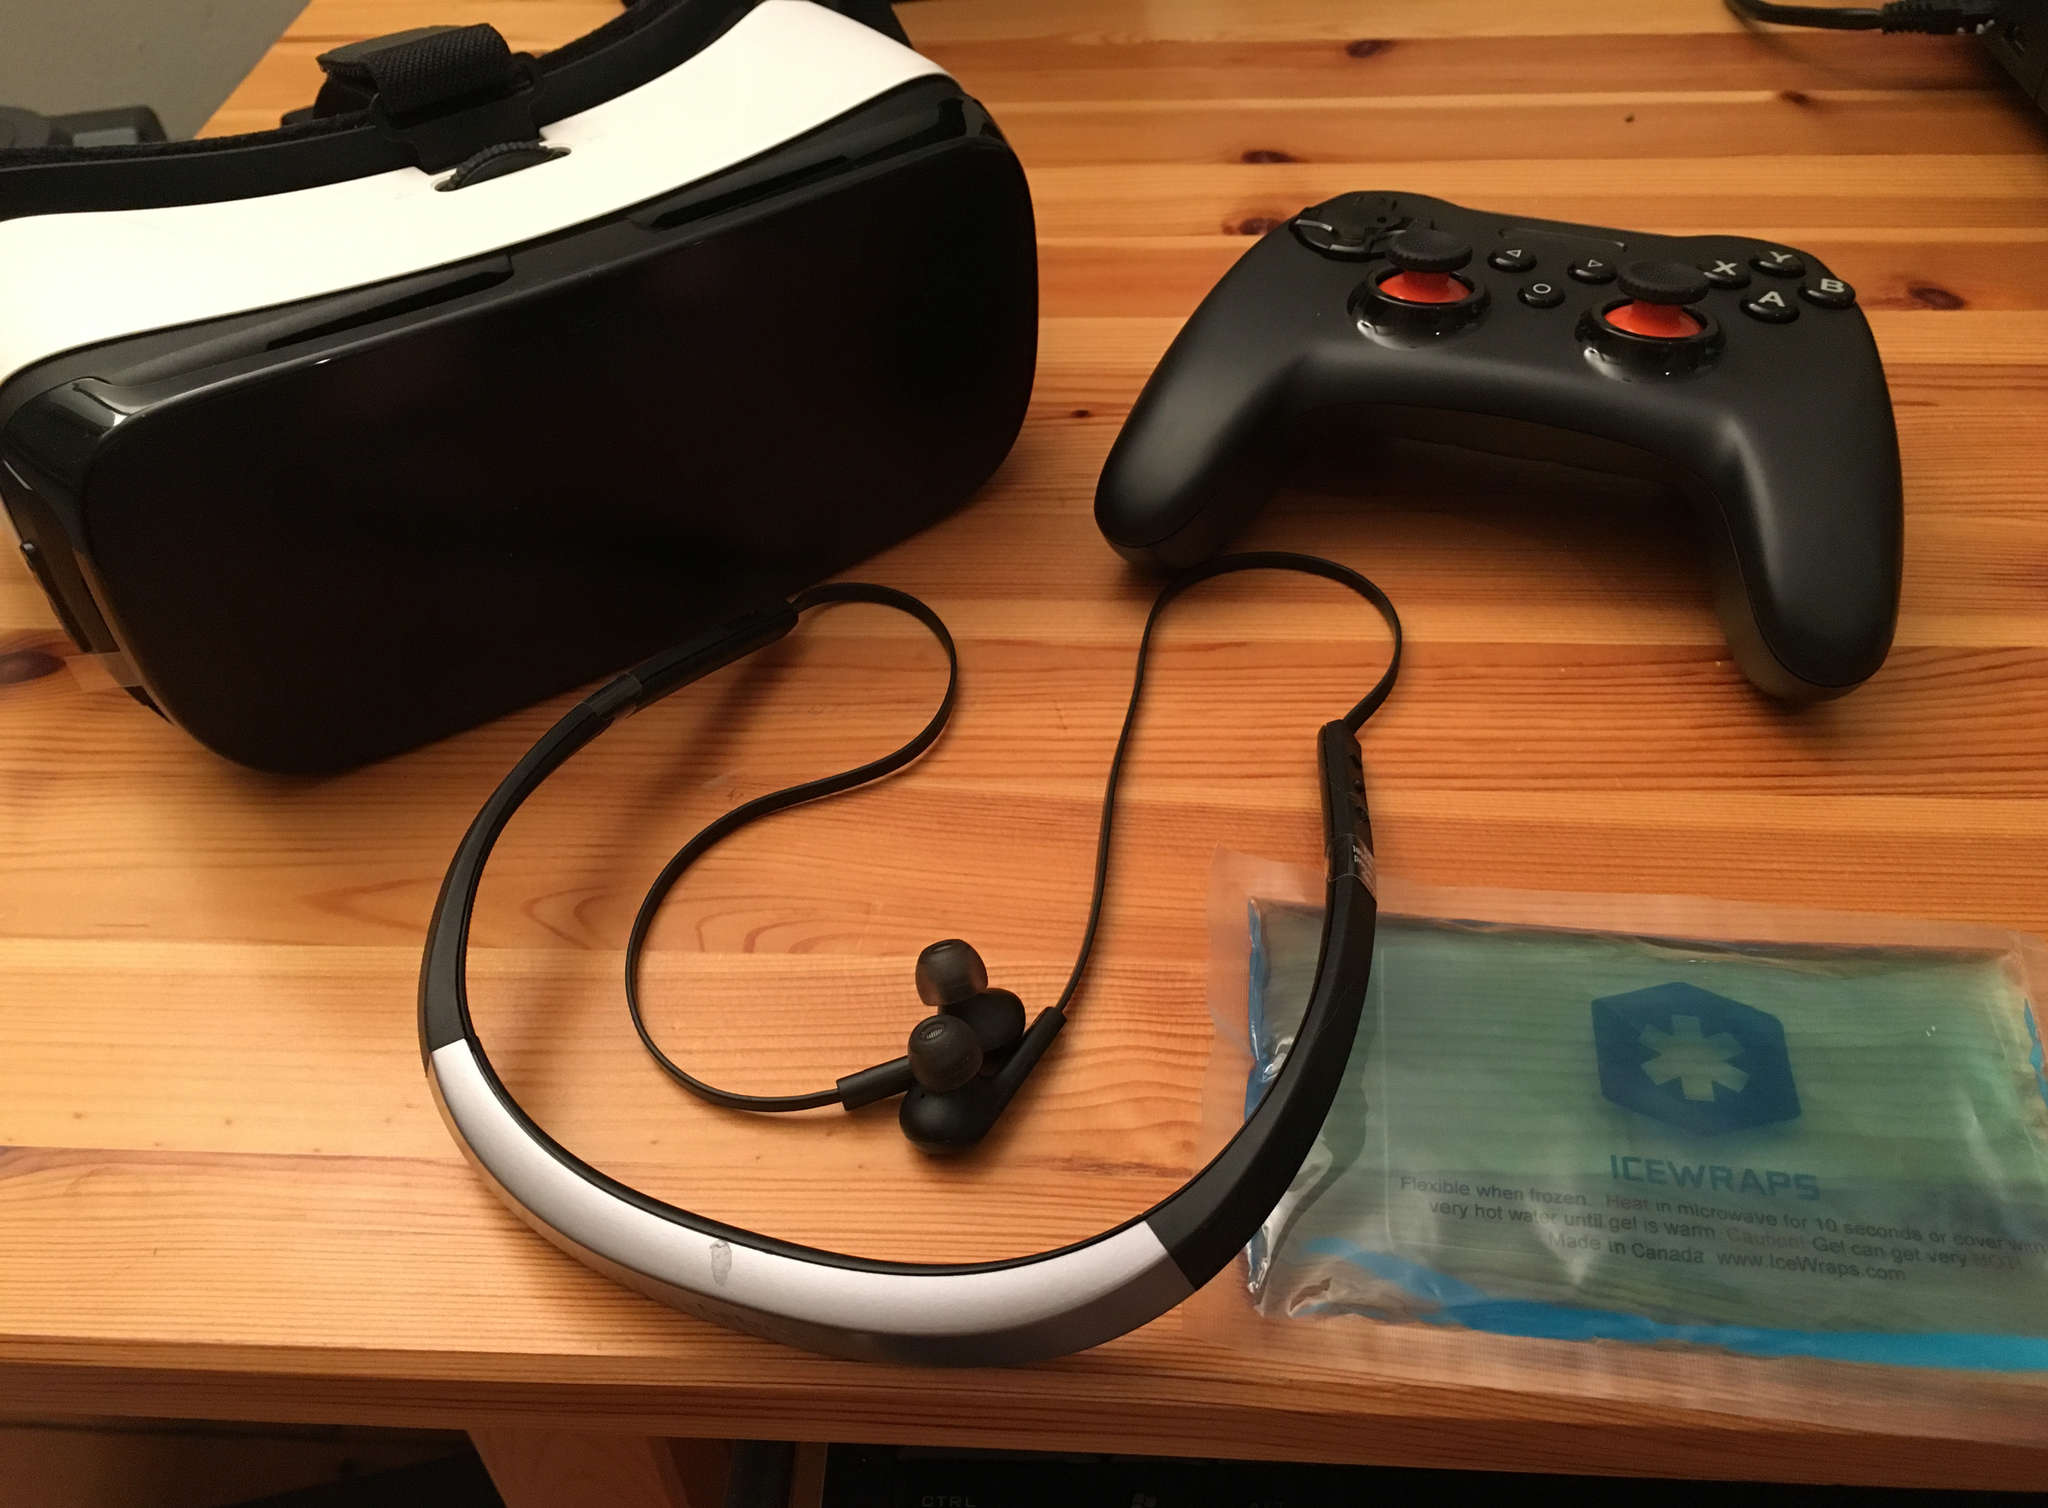 For virtual reality, use the GearVR viewer (left) and listen on a Jabra Halo Smart headset. The SteelSeries Stratus XL controller spins the 360-degree Rio scene.